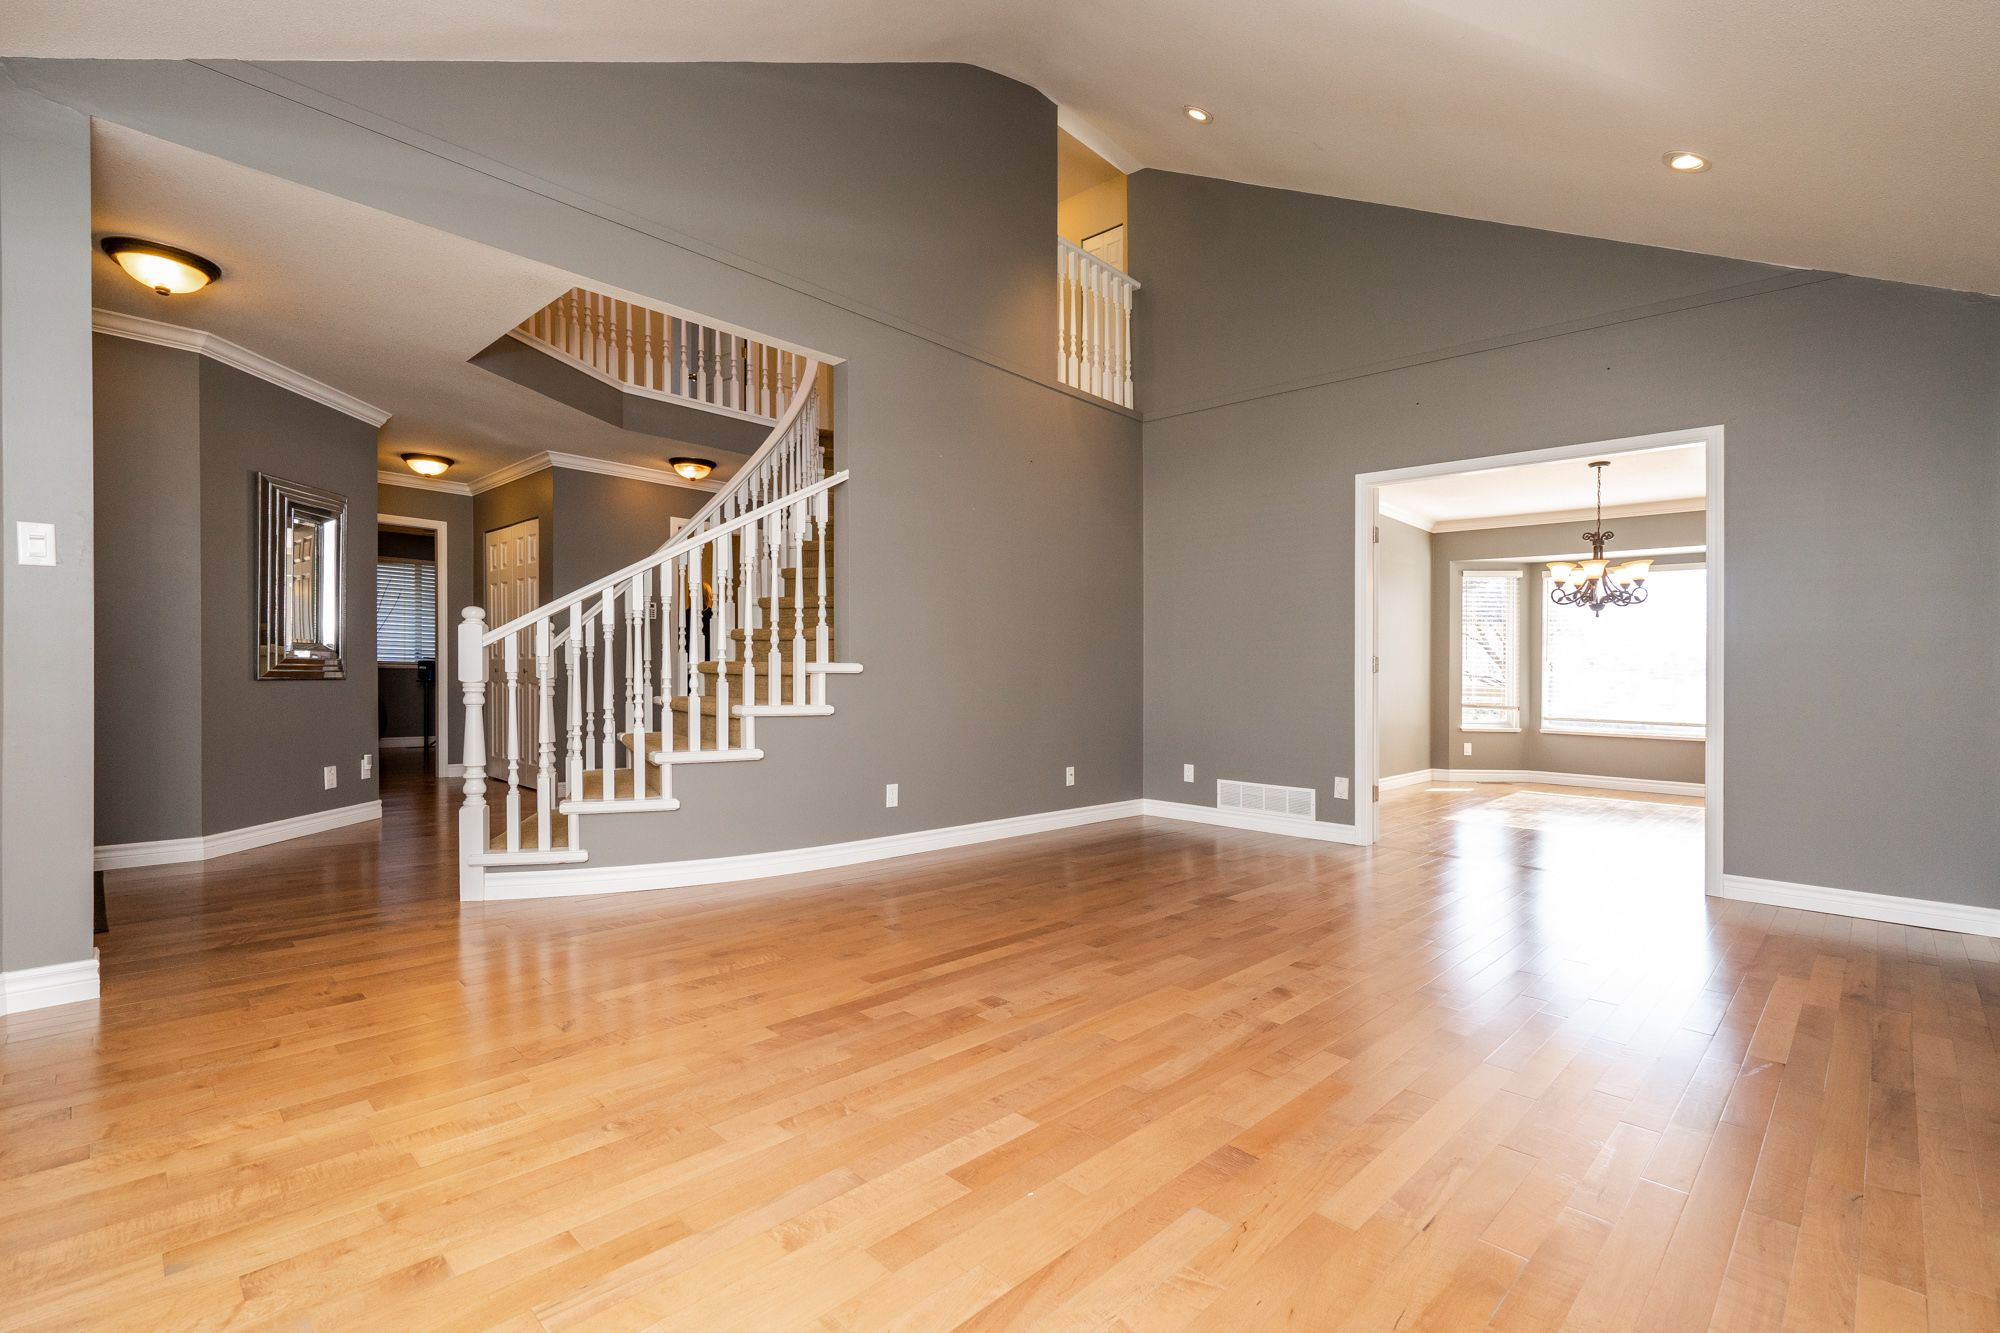 """Photo 15: Photos: 8448 213 Street in Langley: Walnut Grove House for sale in """"Forest Hills"""" : MLS®# R2259409"""